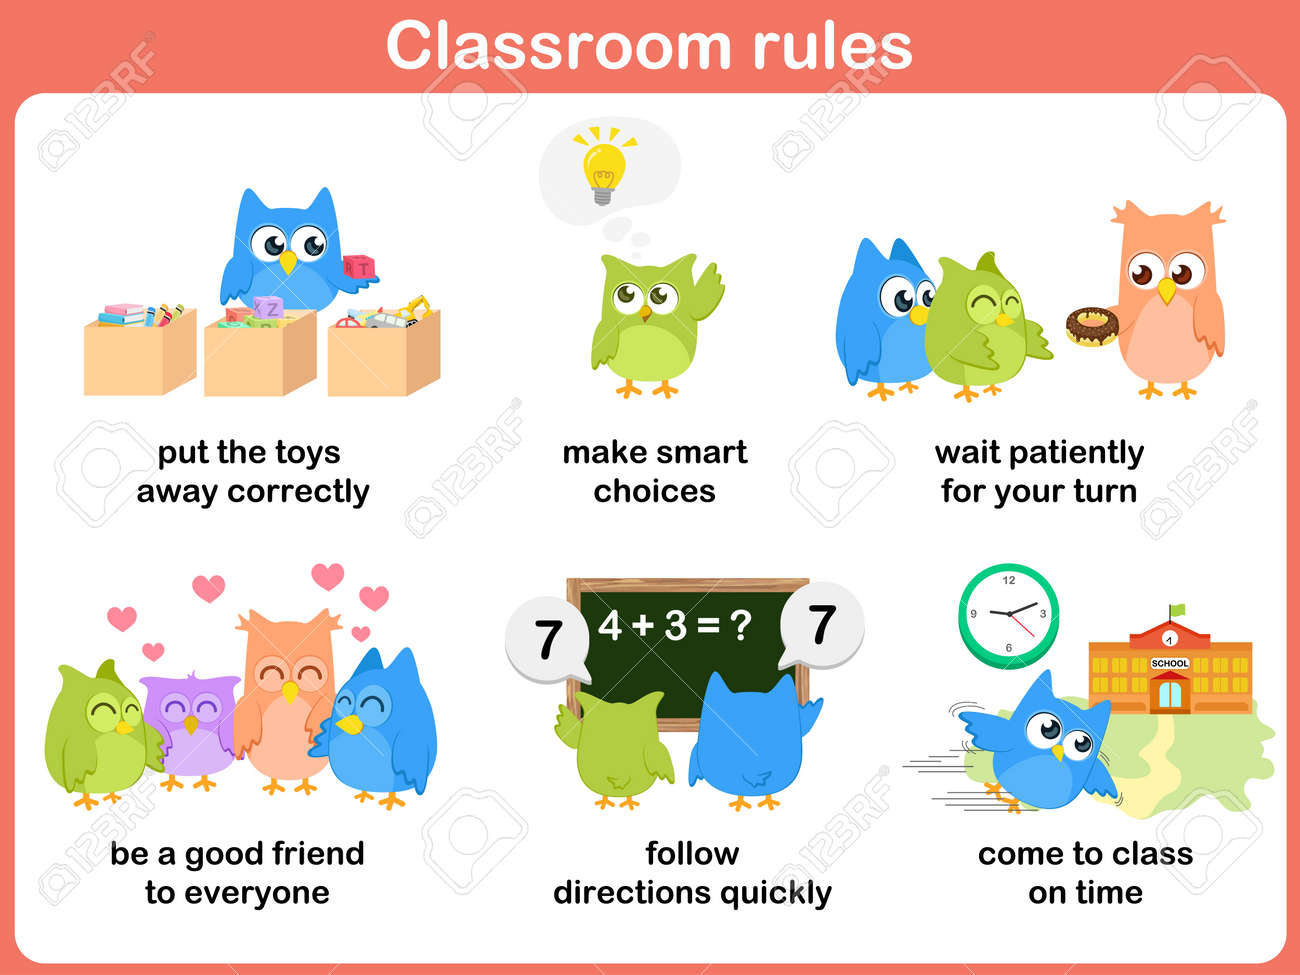 Classroom rules for kids - 34399446